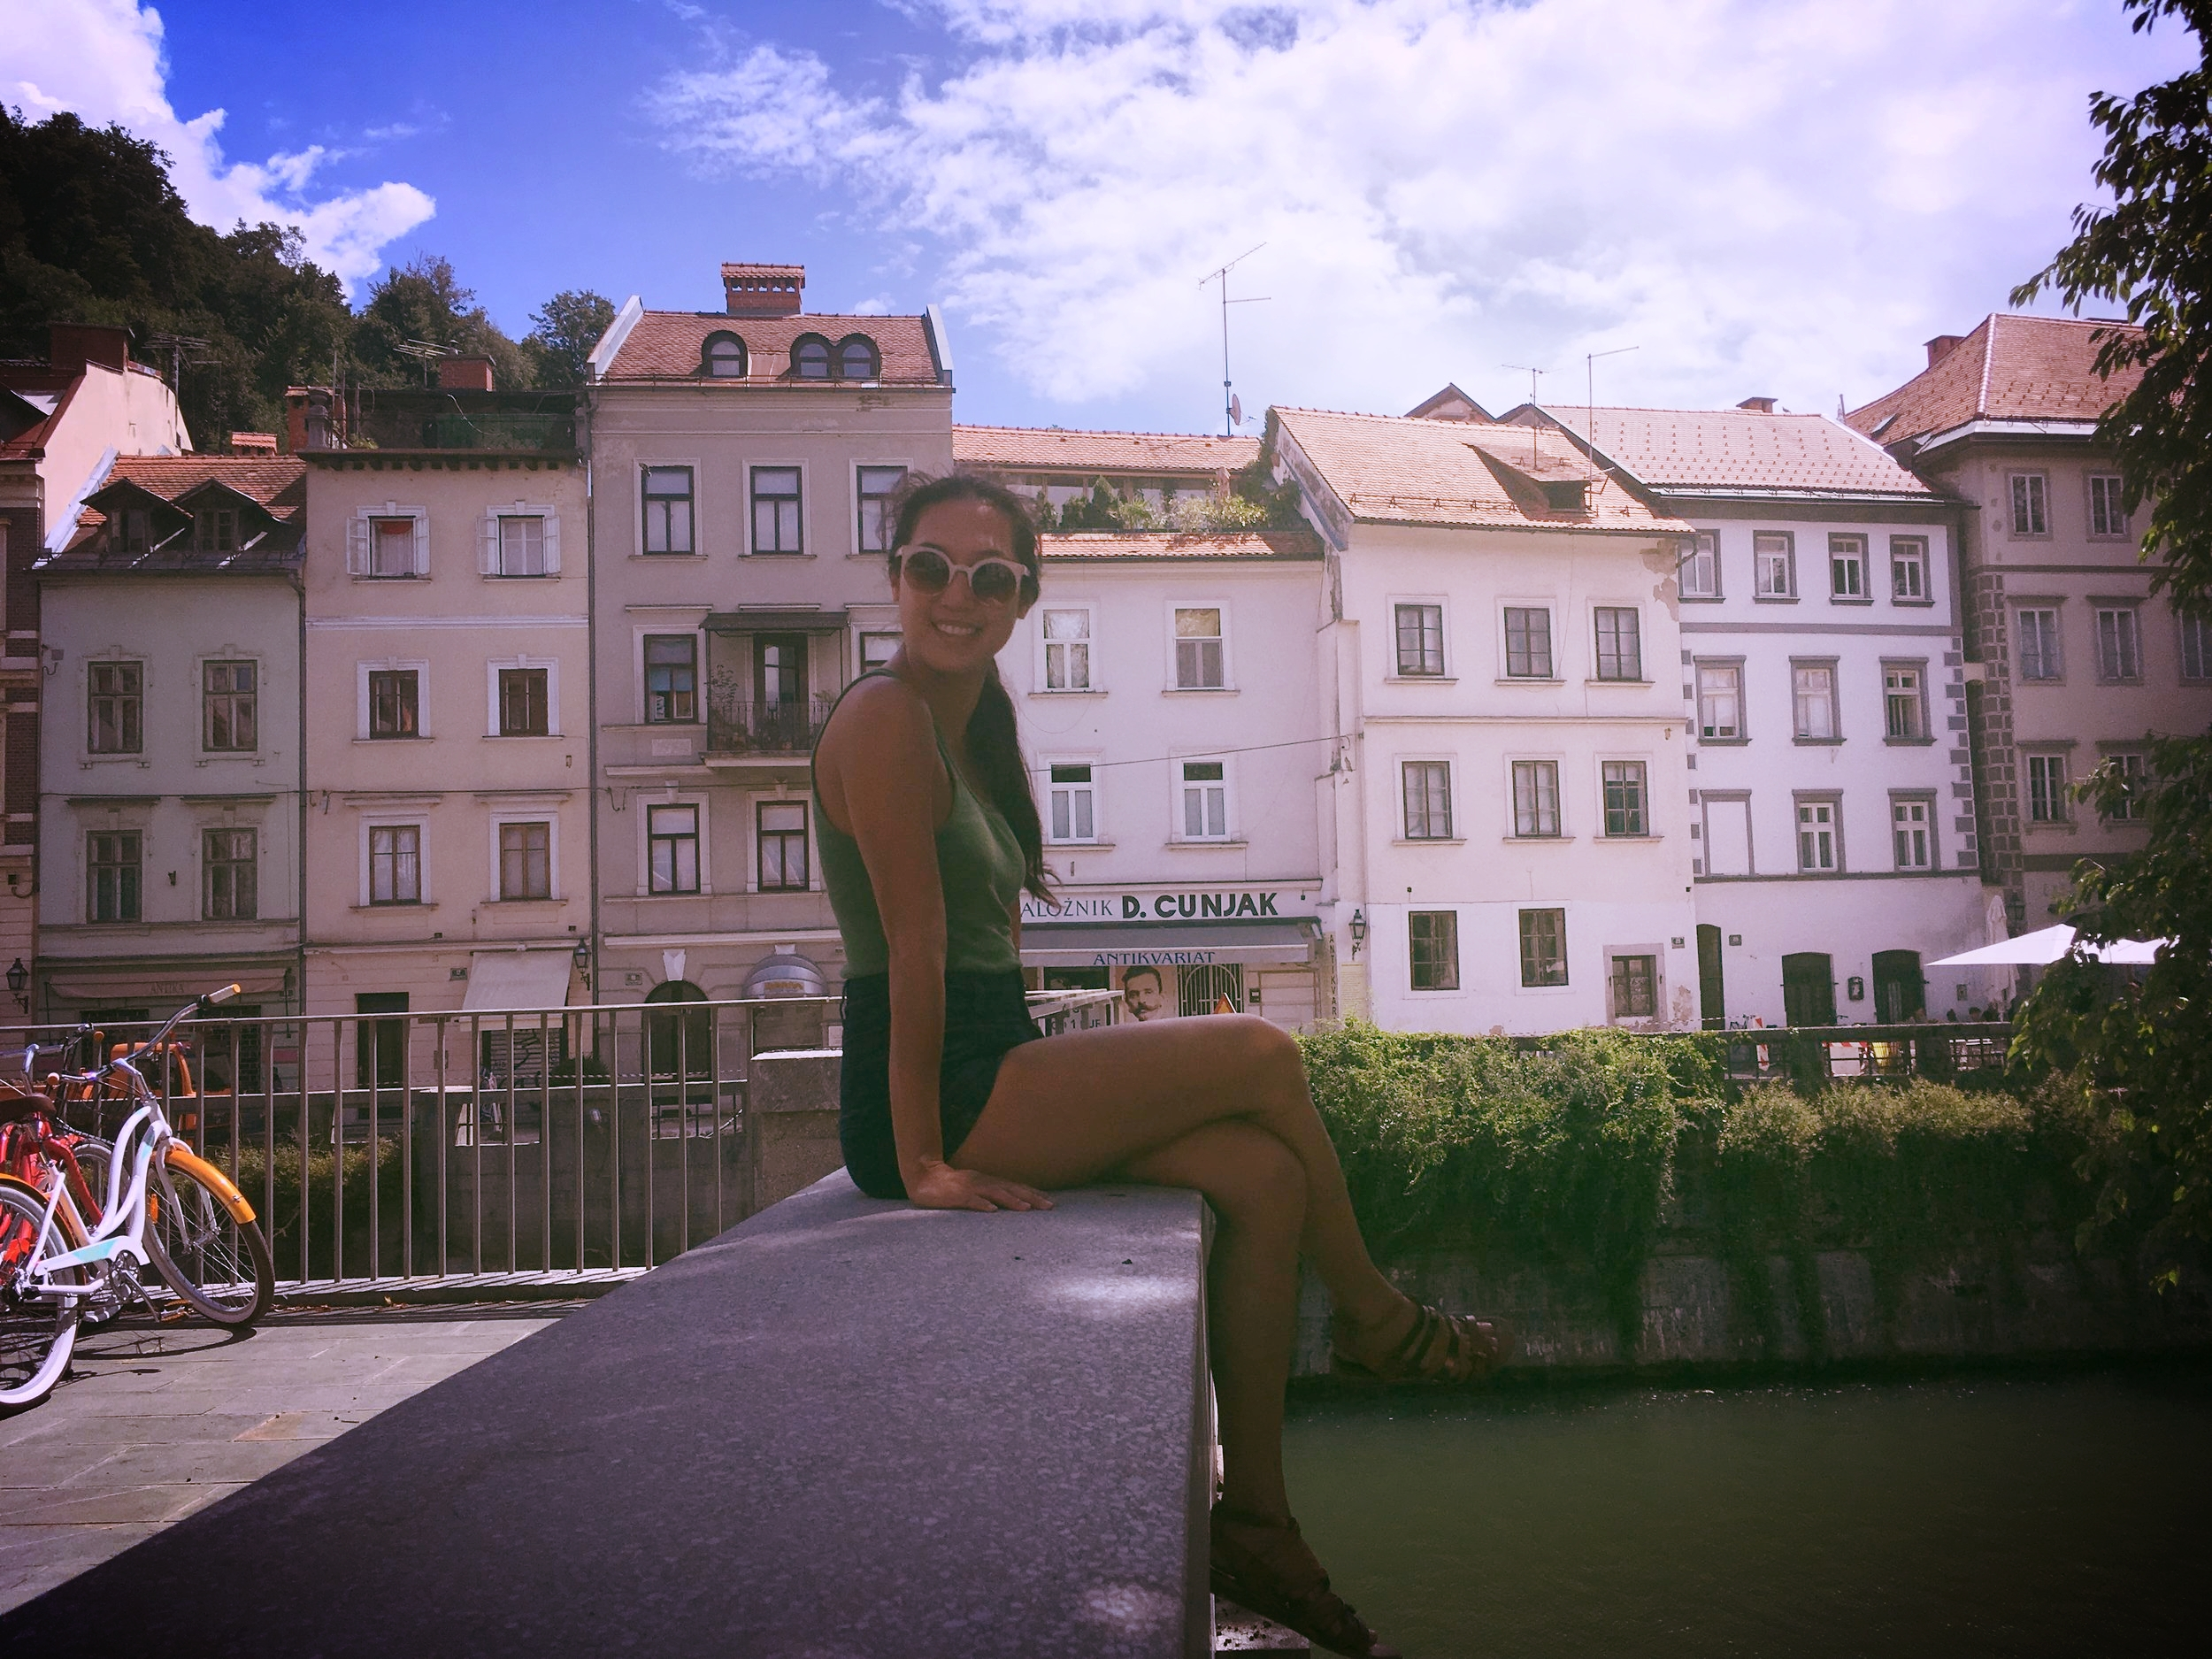 Just hanging by the Ljubljanica River.